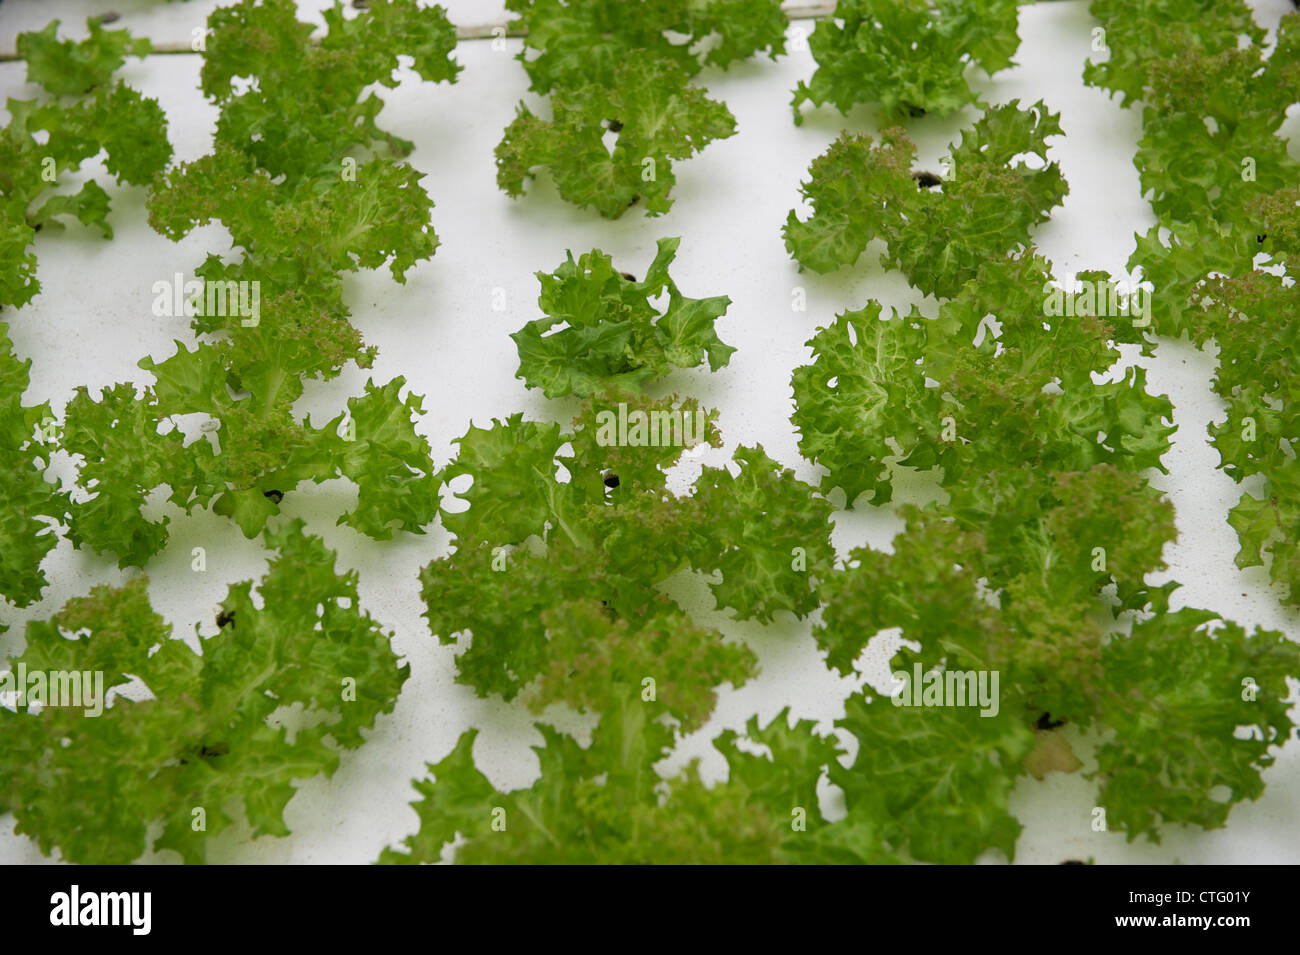 Lettuces grown with nutrient fluid in China. - Stock Image